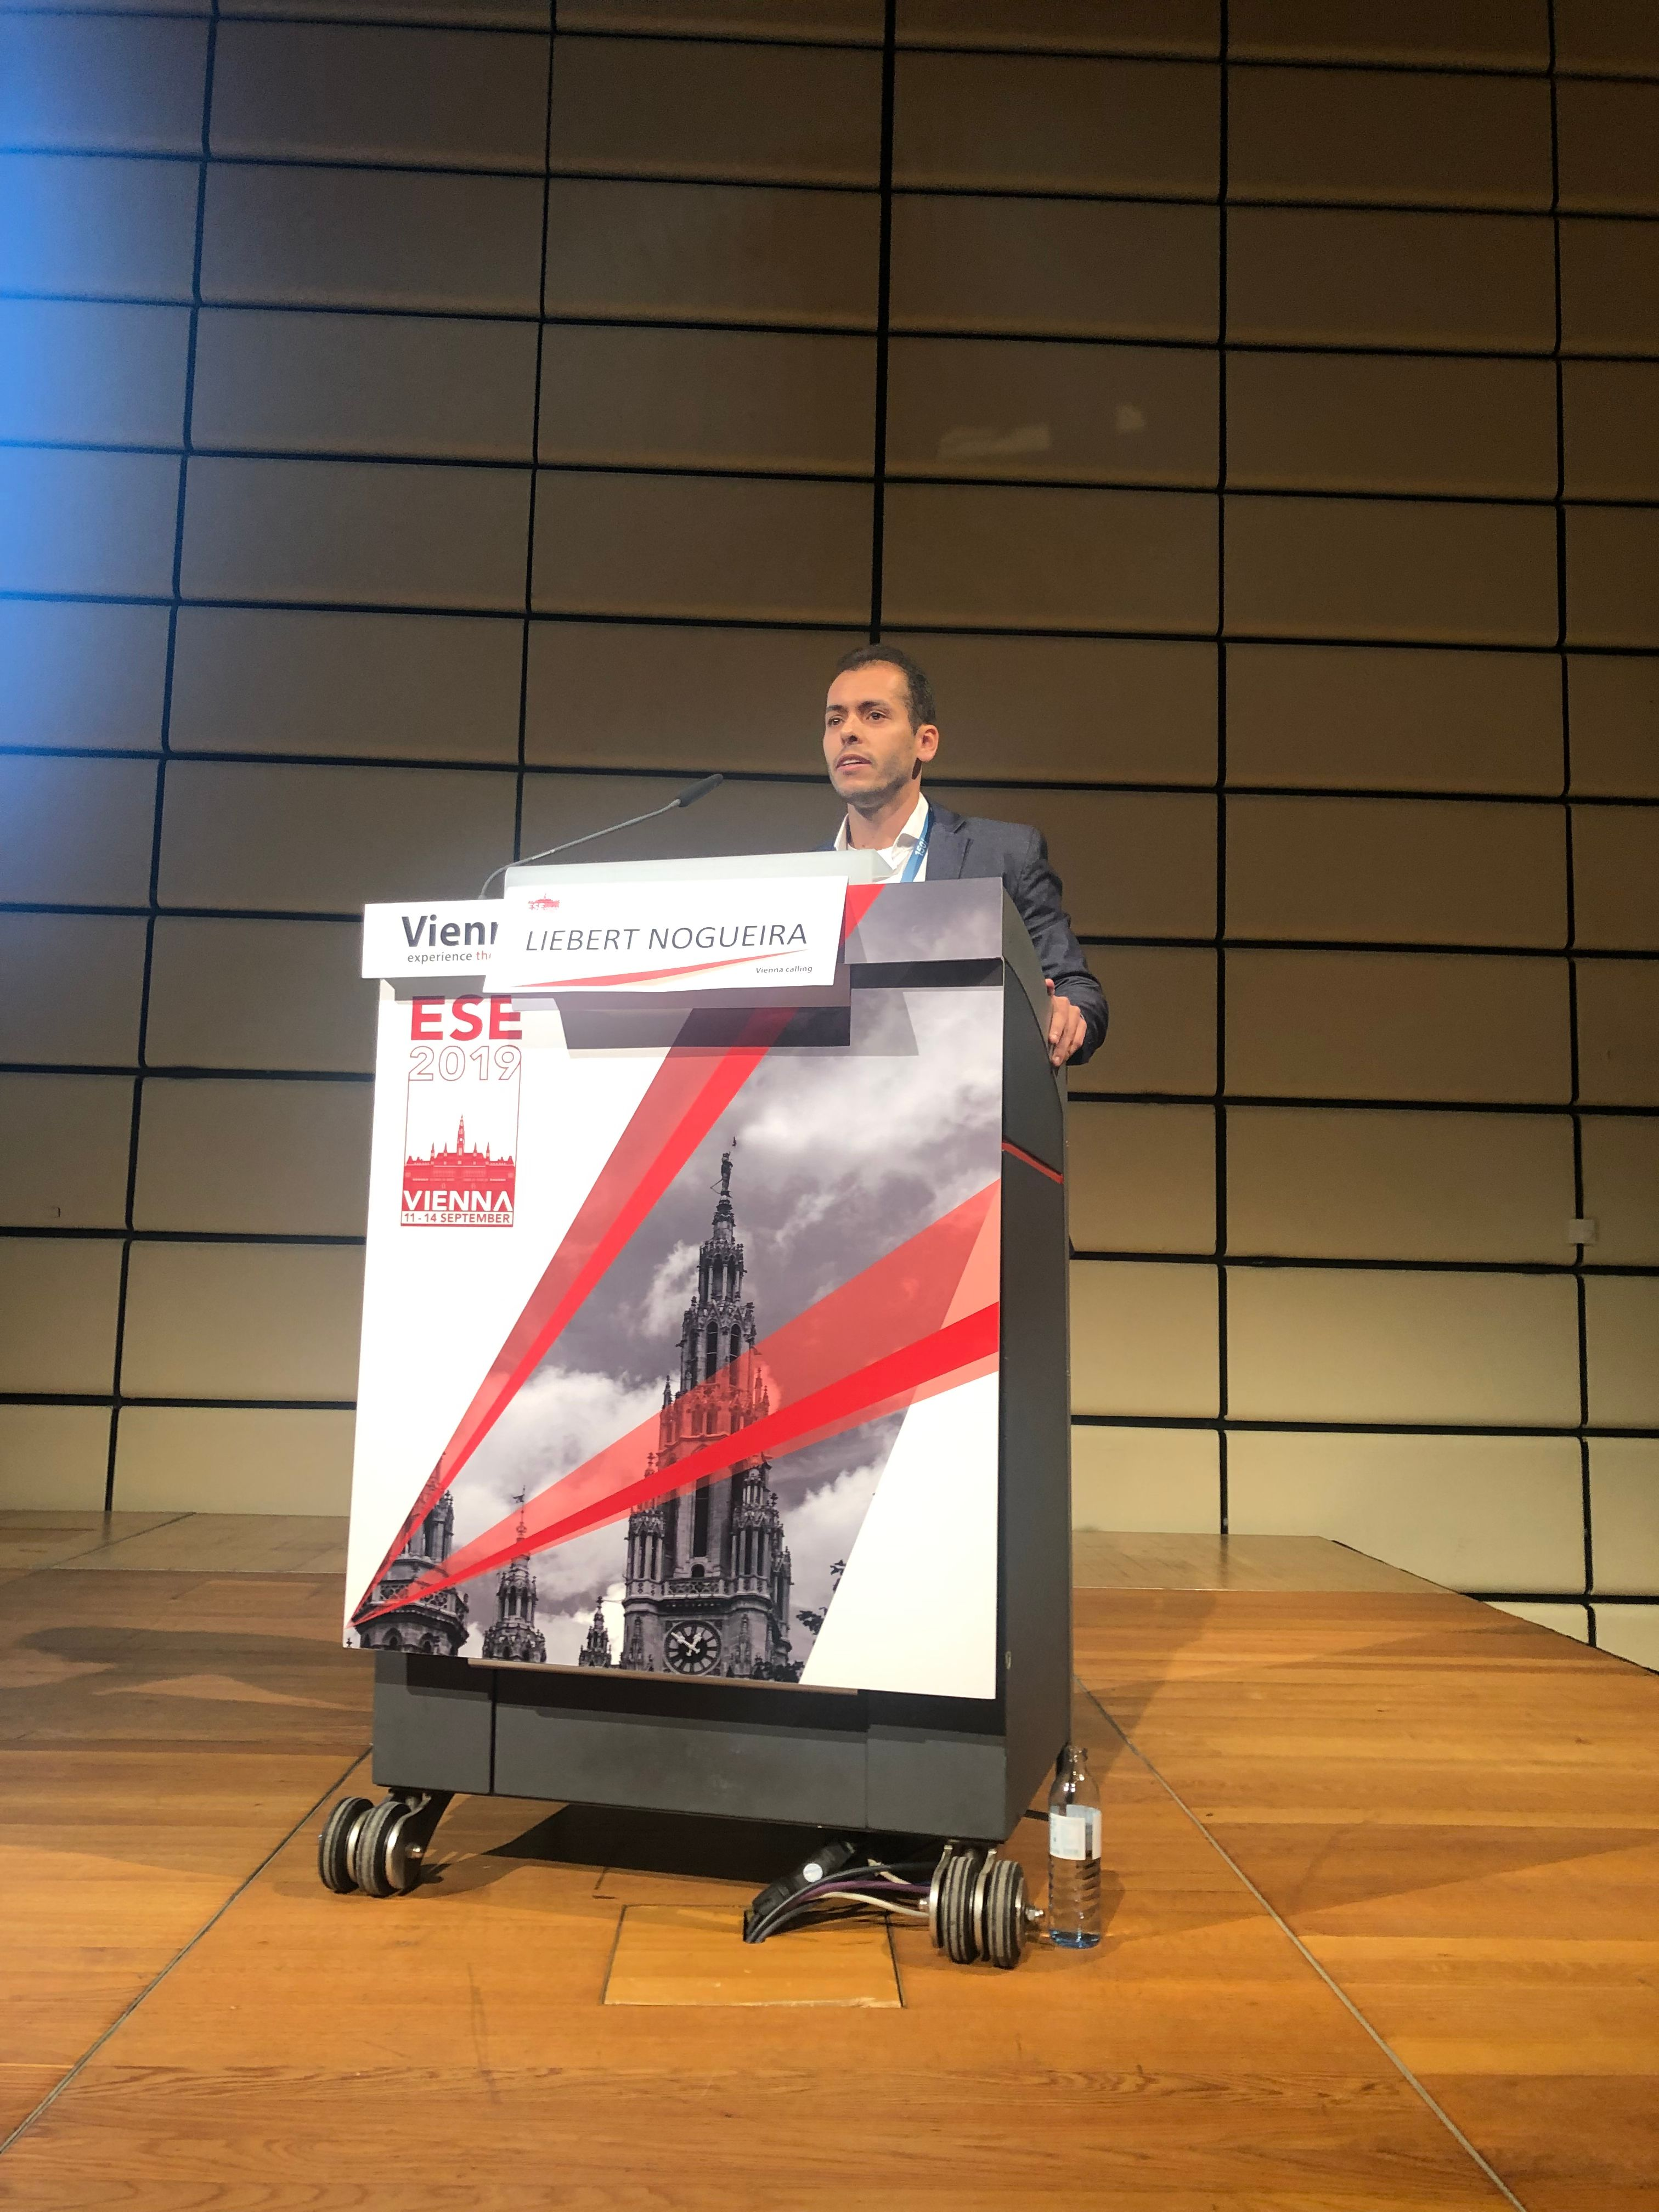 Liebert is given a plenary talk at ESE 2019